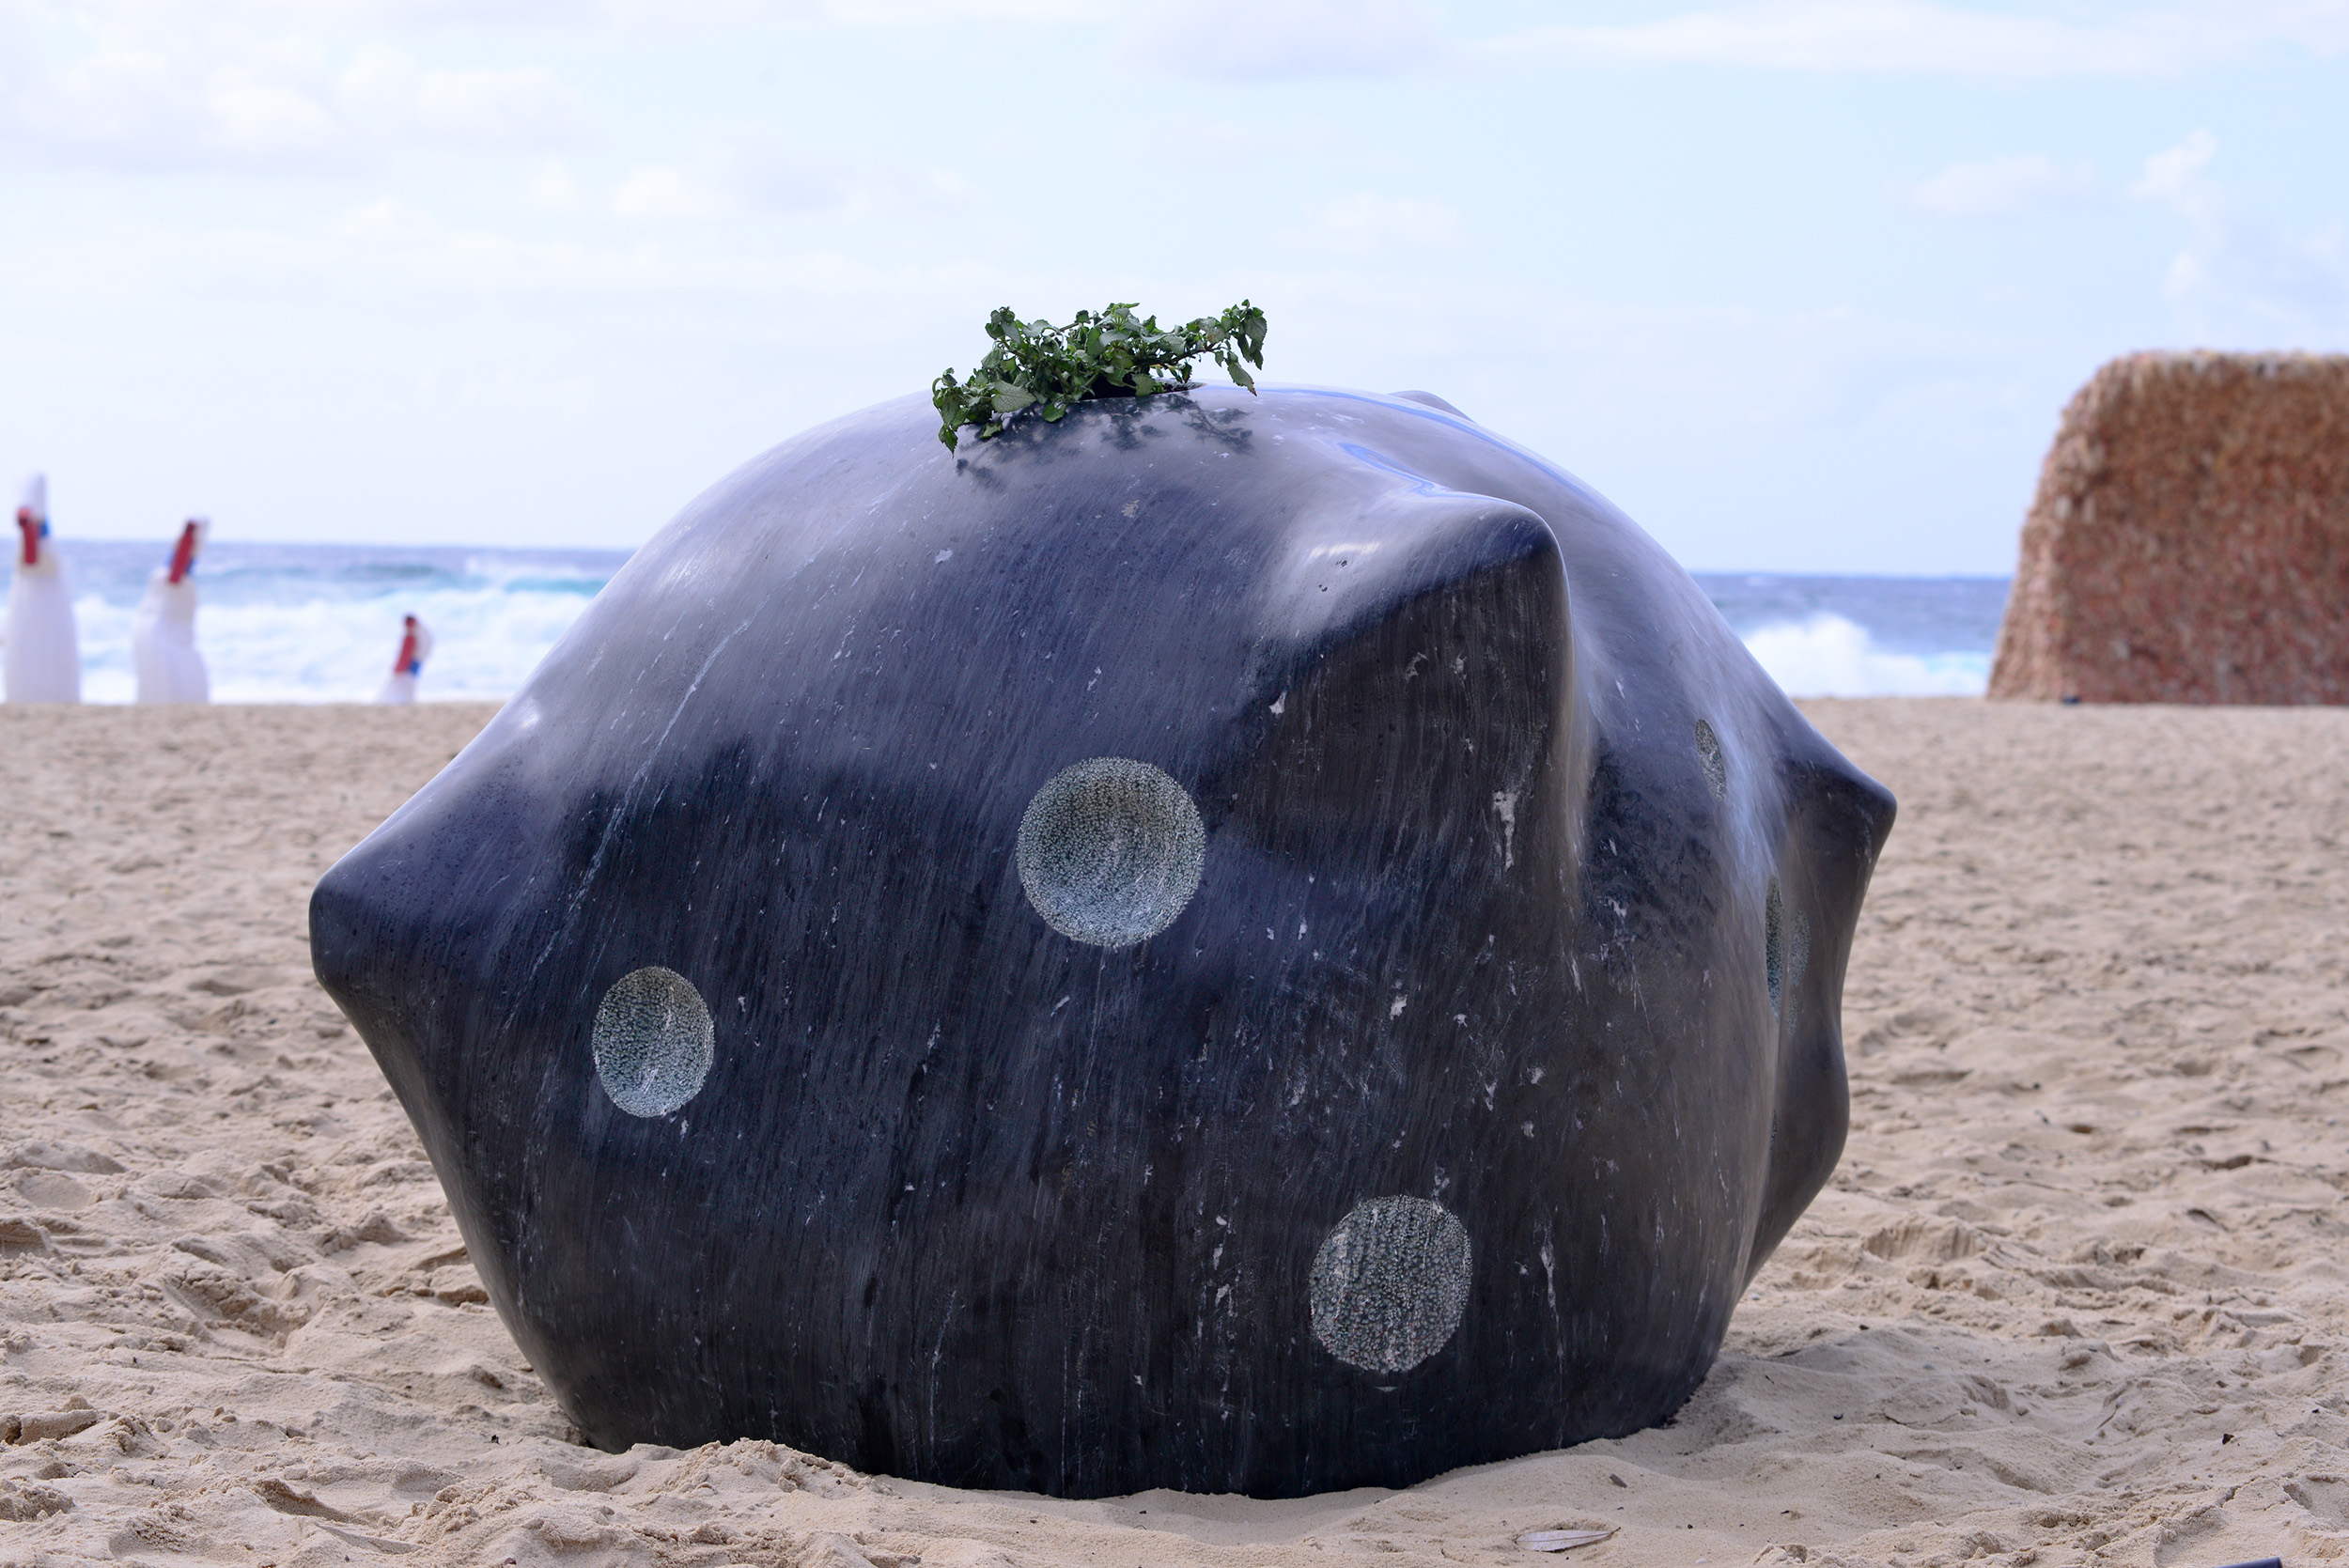 Jina Lee, Meteorite, Sculpture by the Sea, Bondi 2015. Photo Clyde Yee